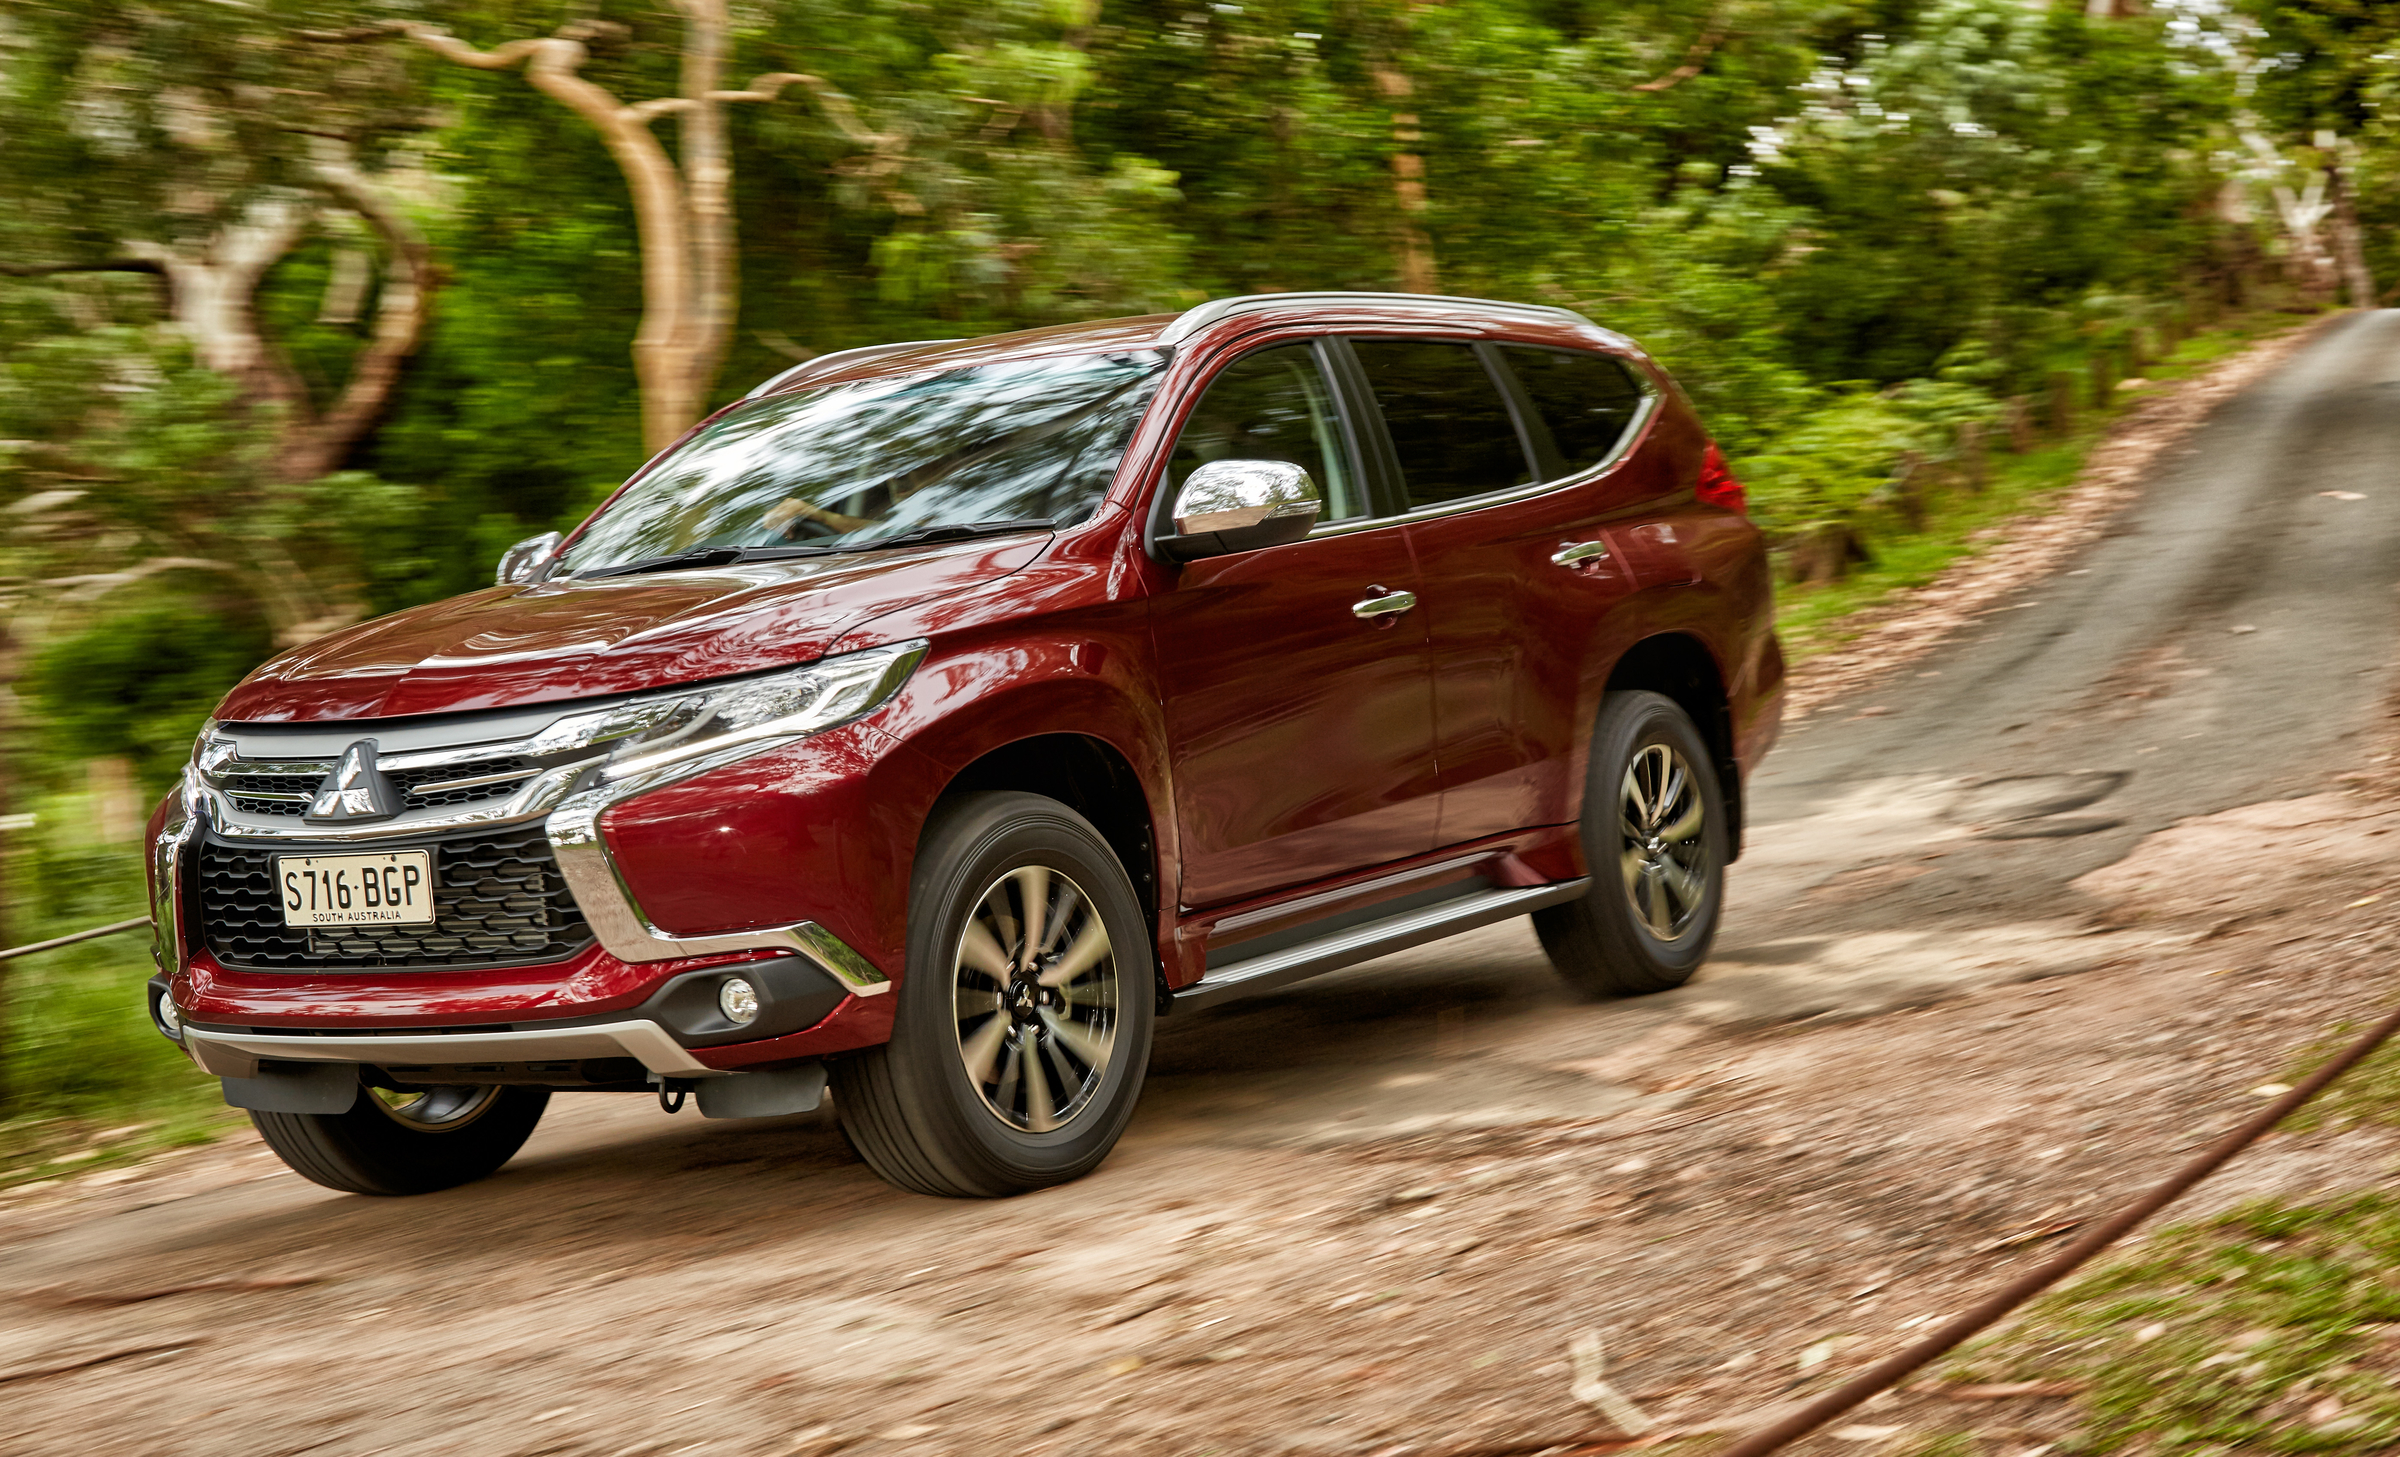 2016 Mitsubishi Pajero Sport Test Drive (Photo 22 of 23)